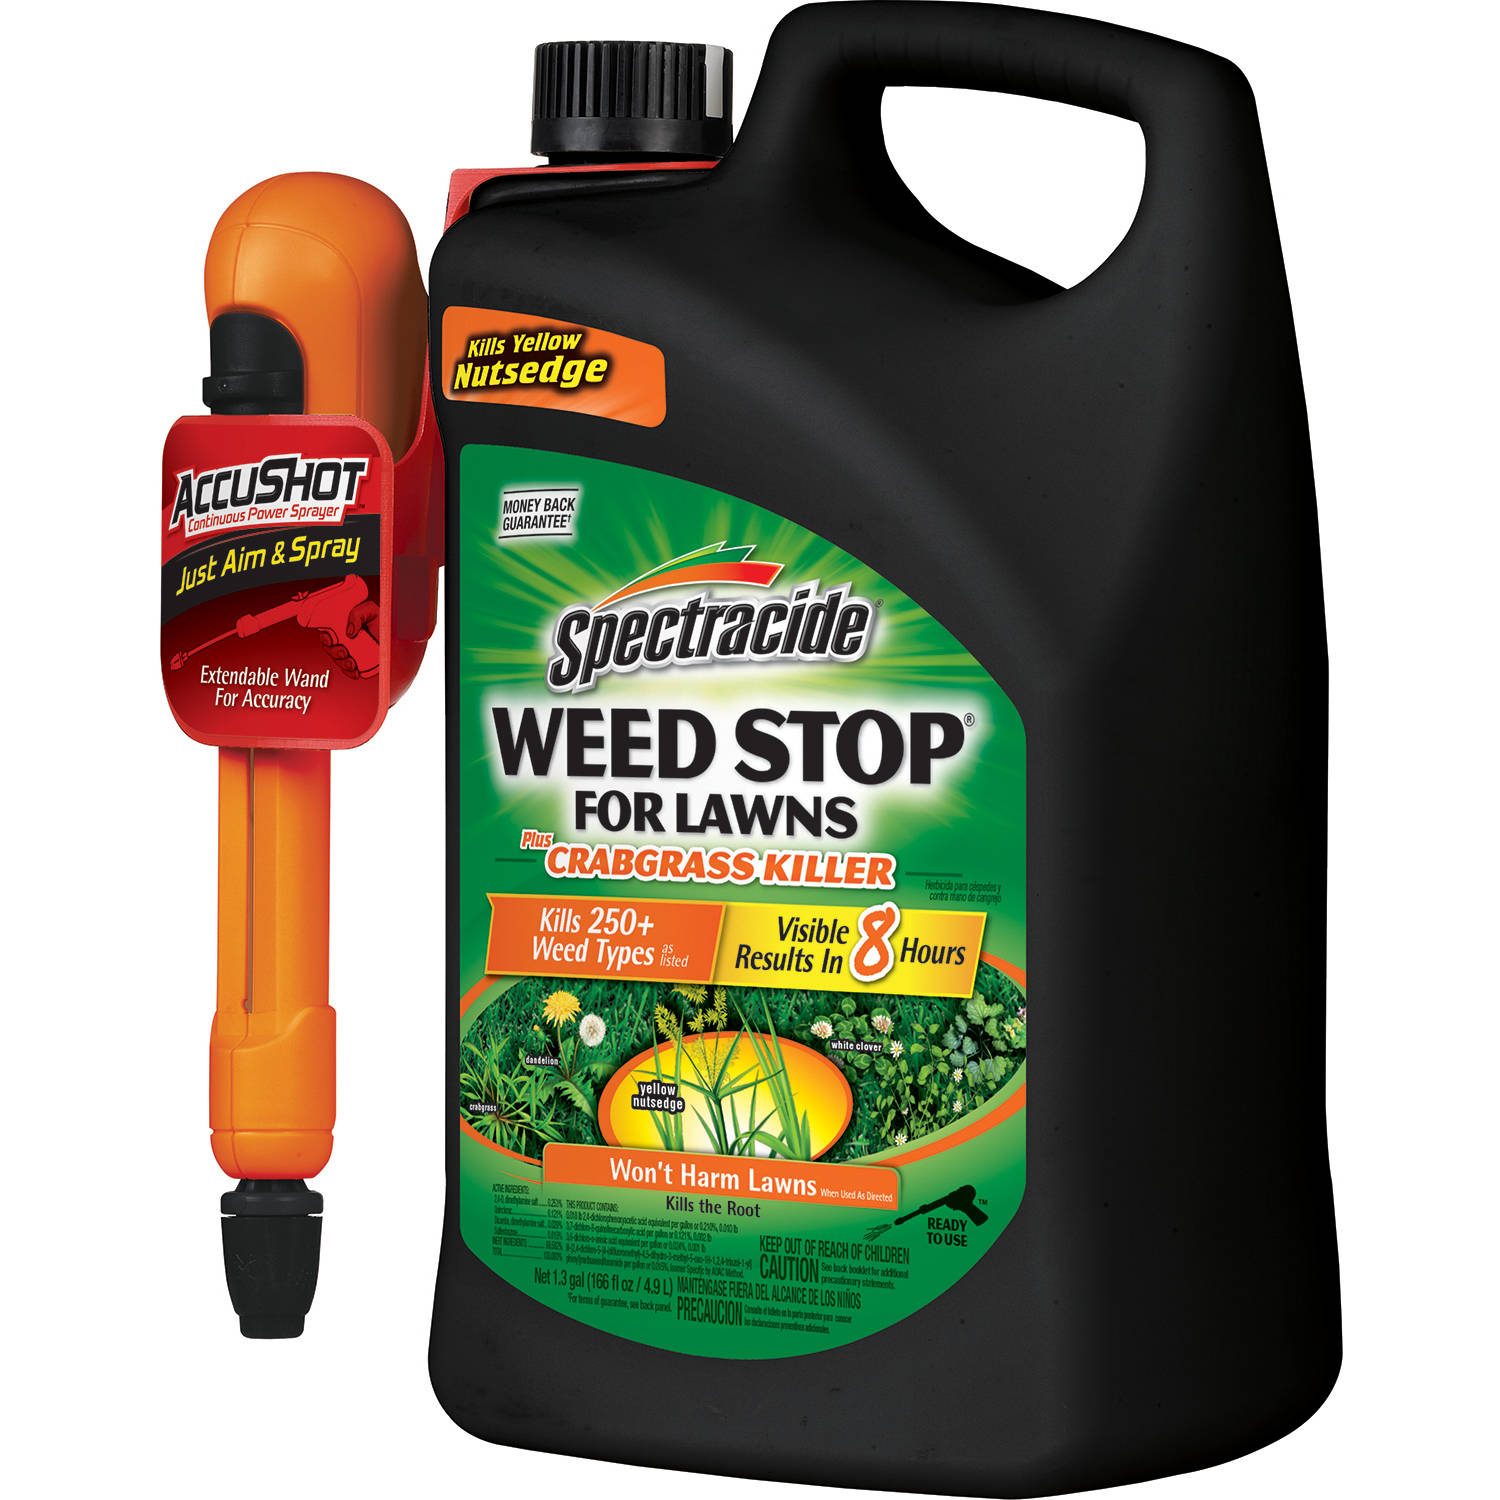 Spectracide Weed Stop for Lawns plus Crabgrass Killer AccuShot Sprayer, 1.33 gal